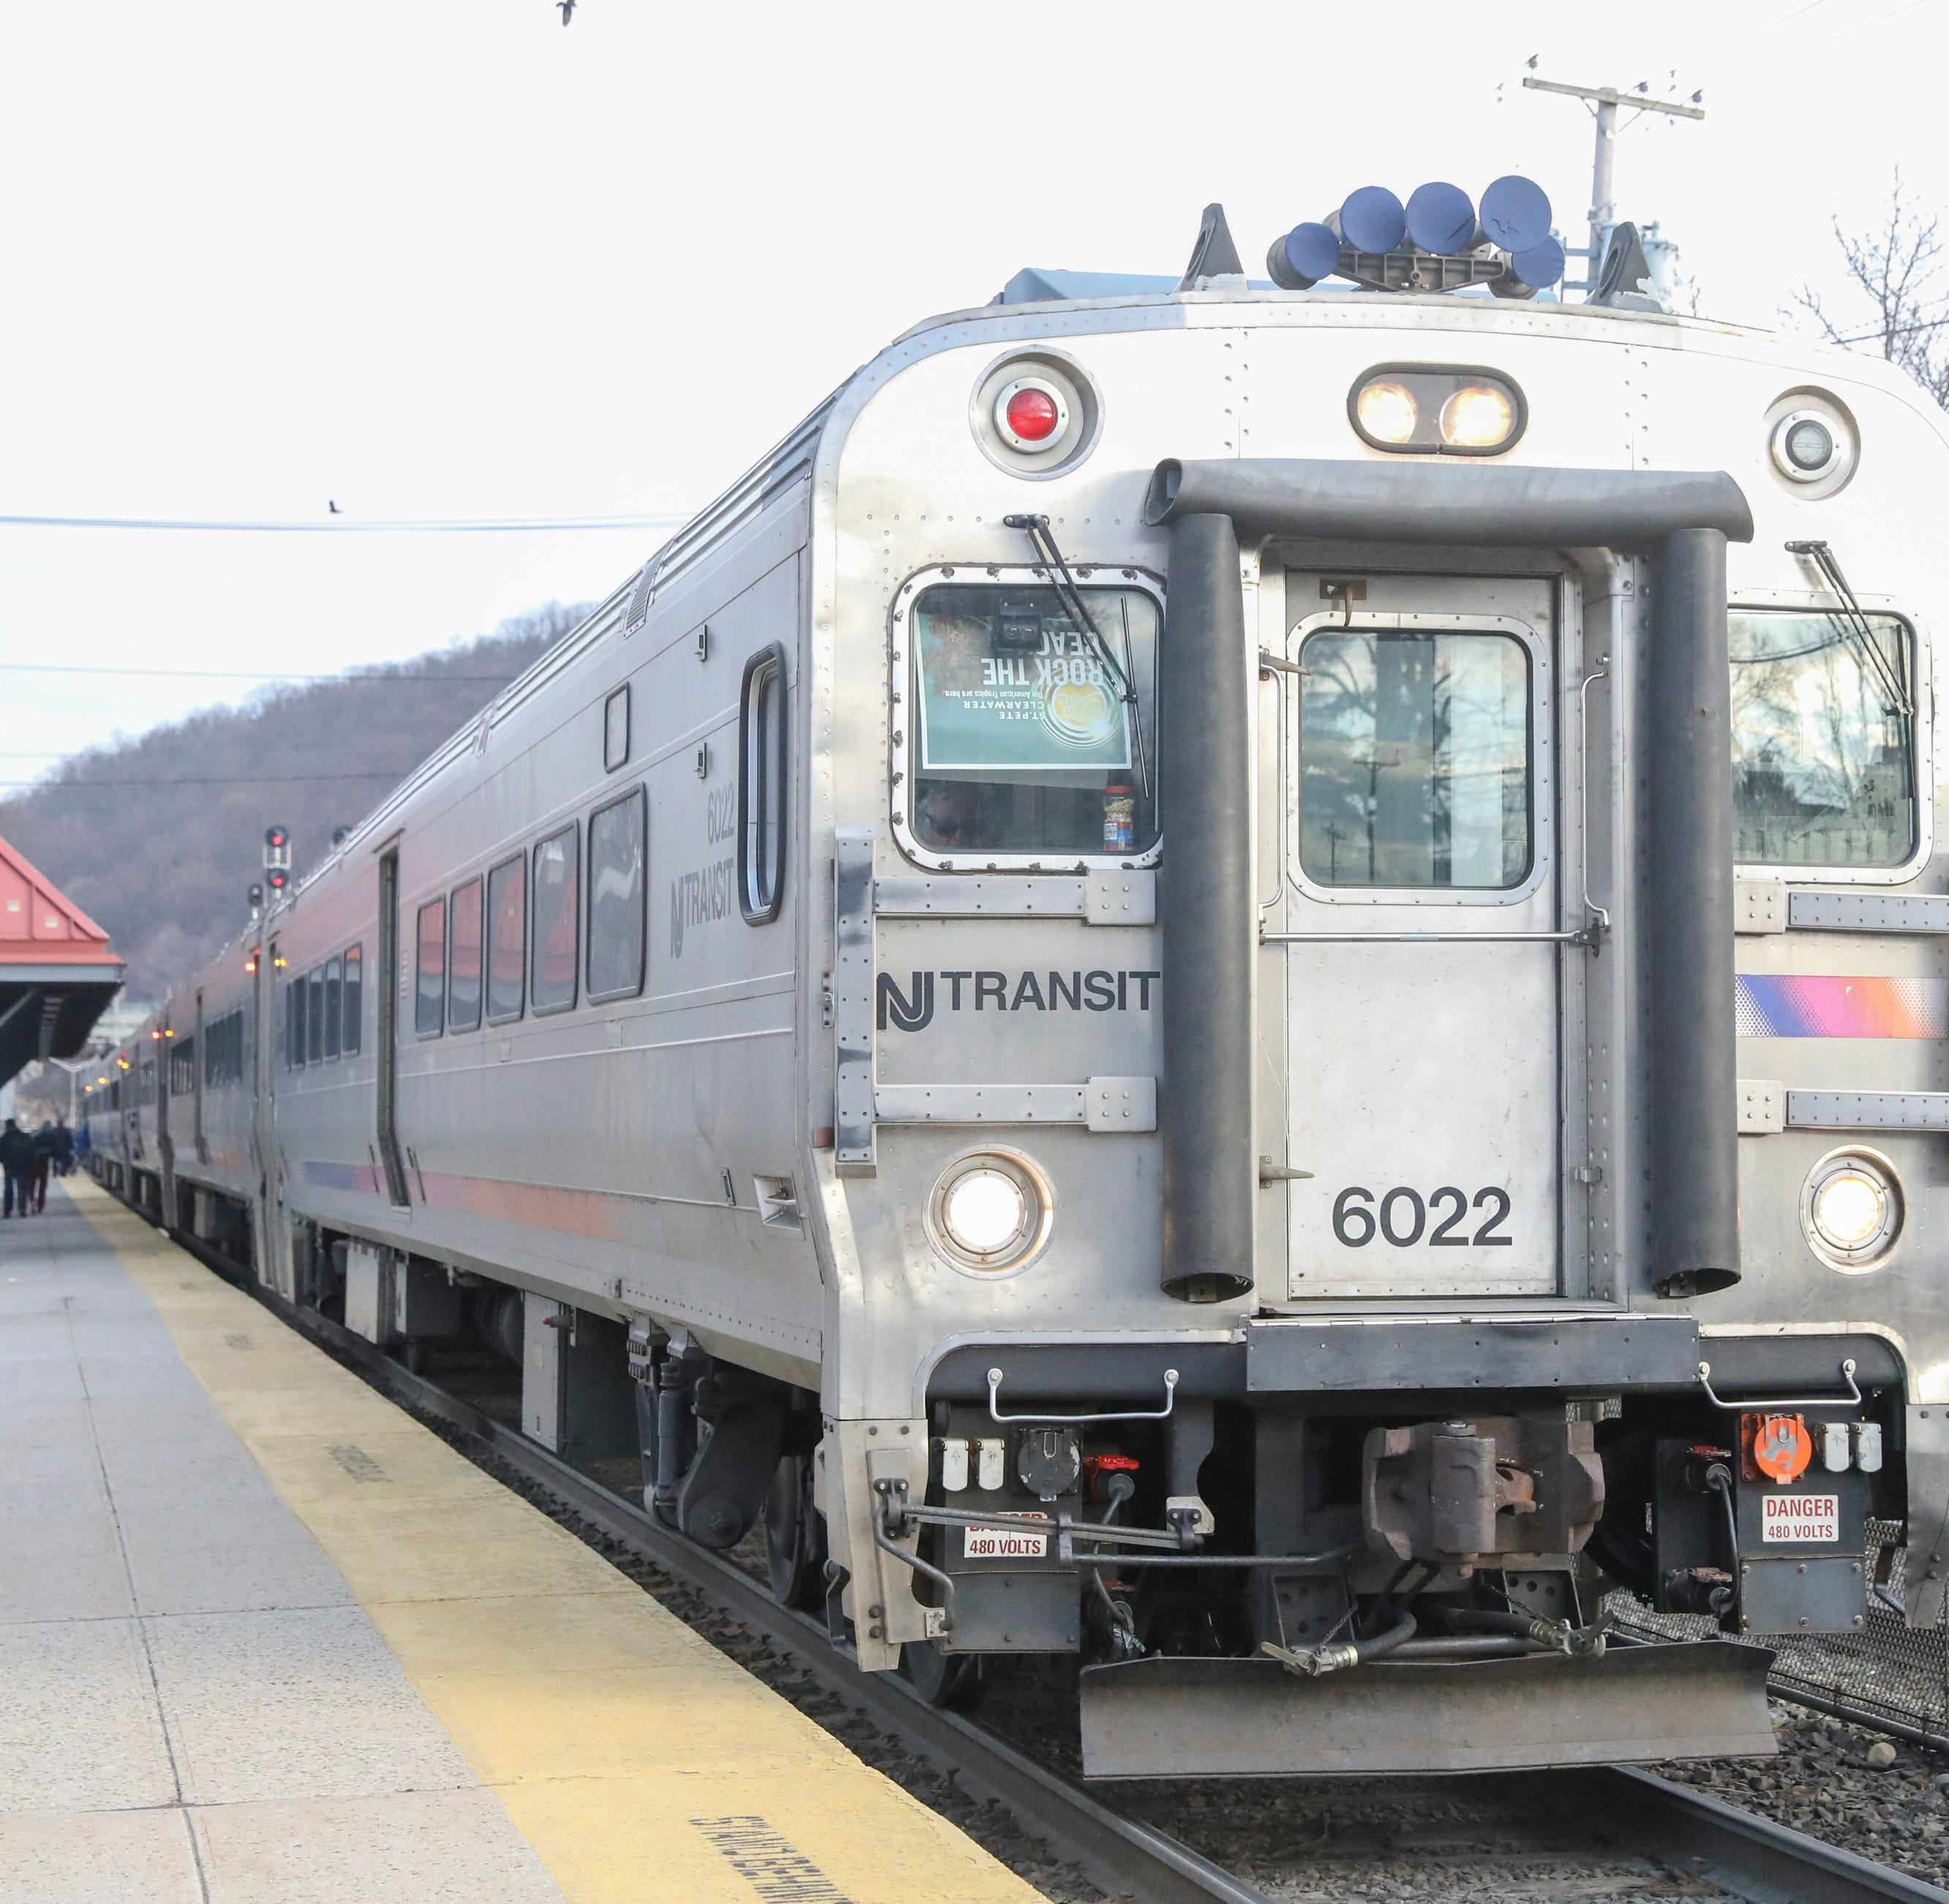 Metro-North service west of Hudson suffers as commuter group urges change